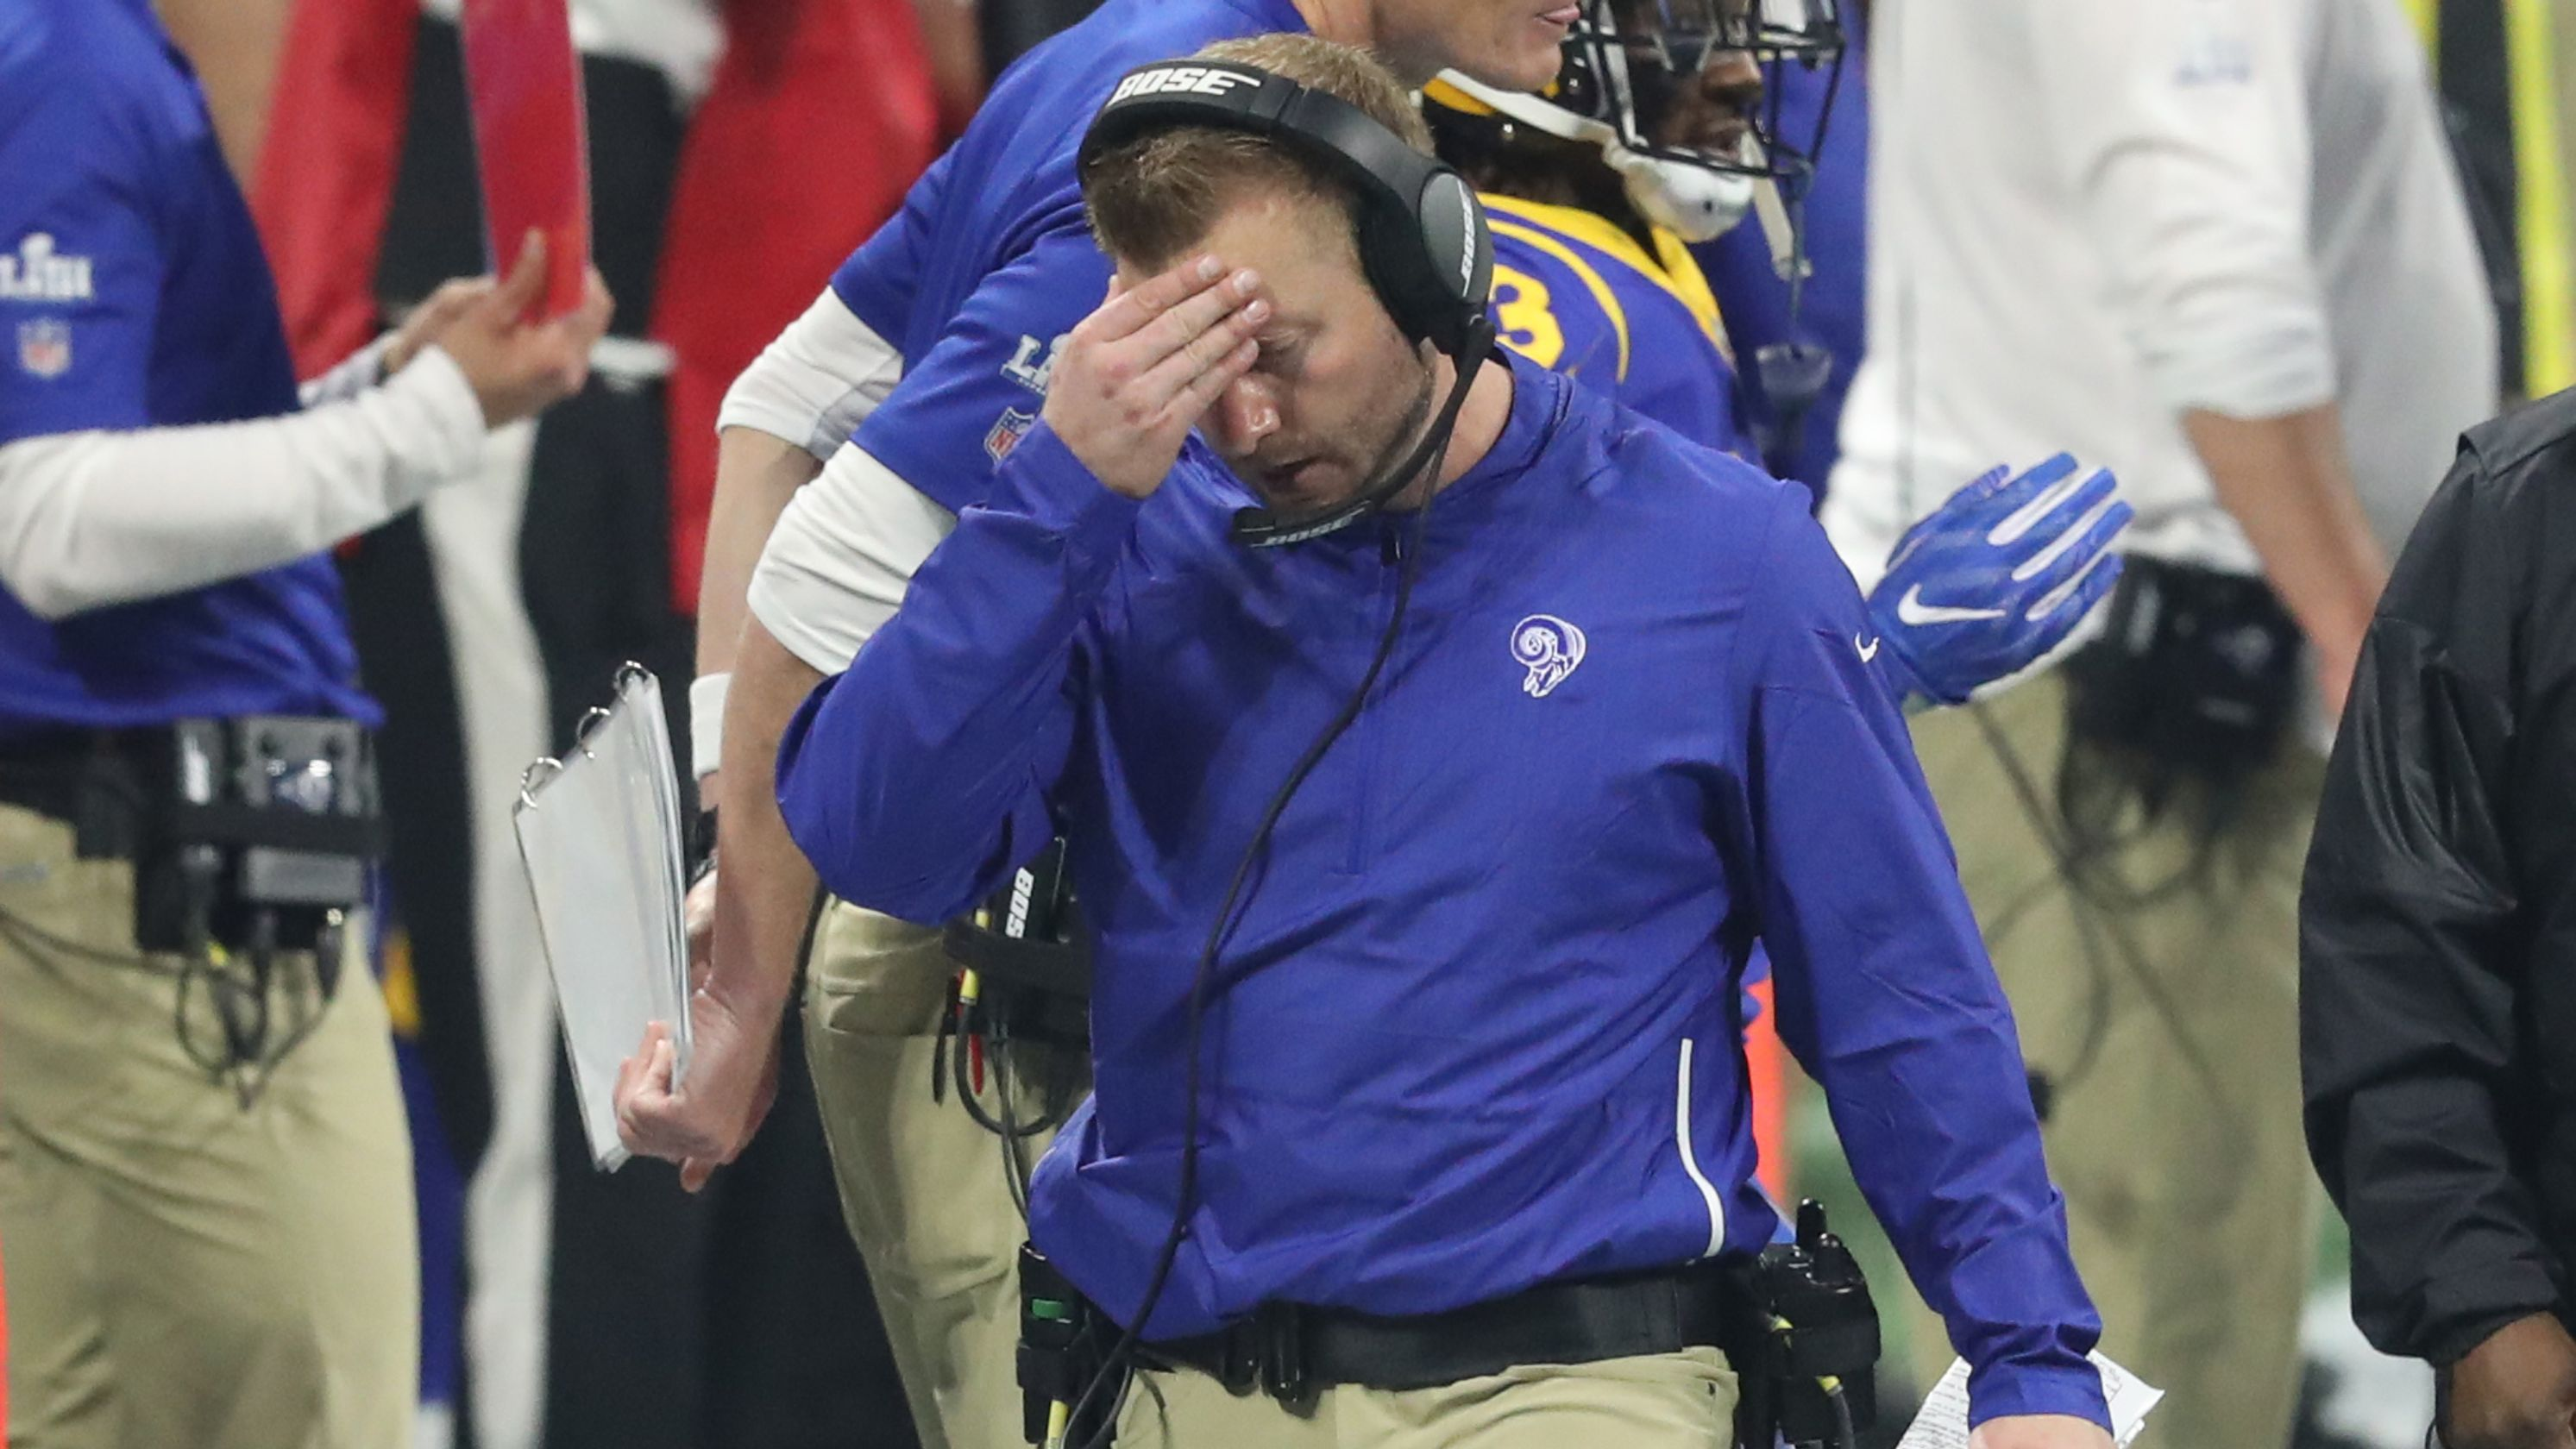 Worst Super Bowl ever? Patriots vs. Rams no thriller, but not in bottom five